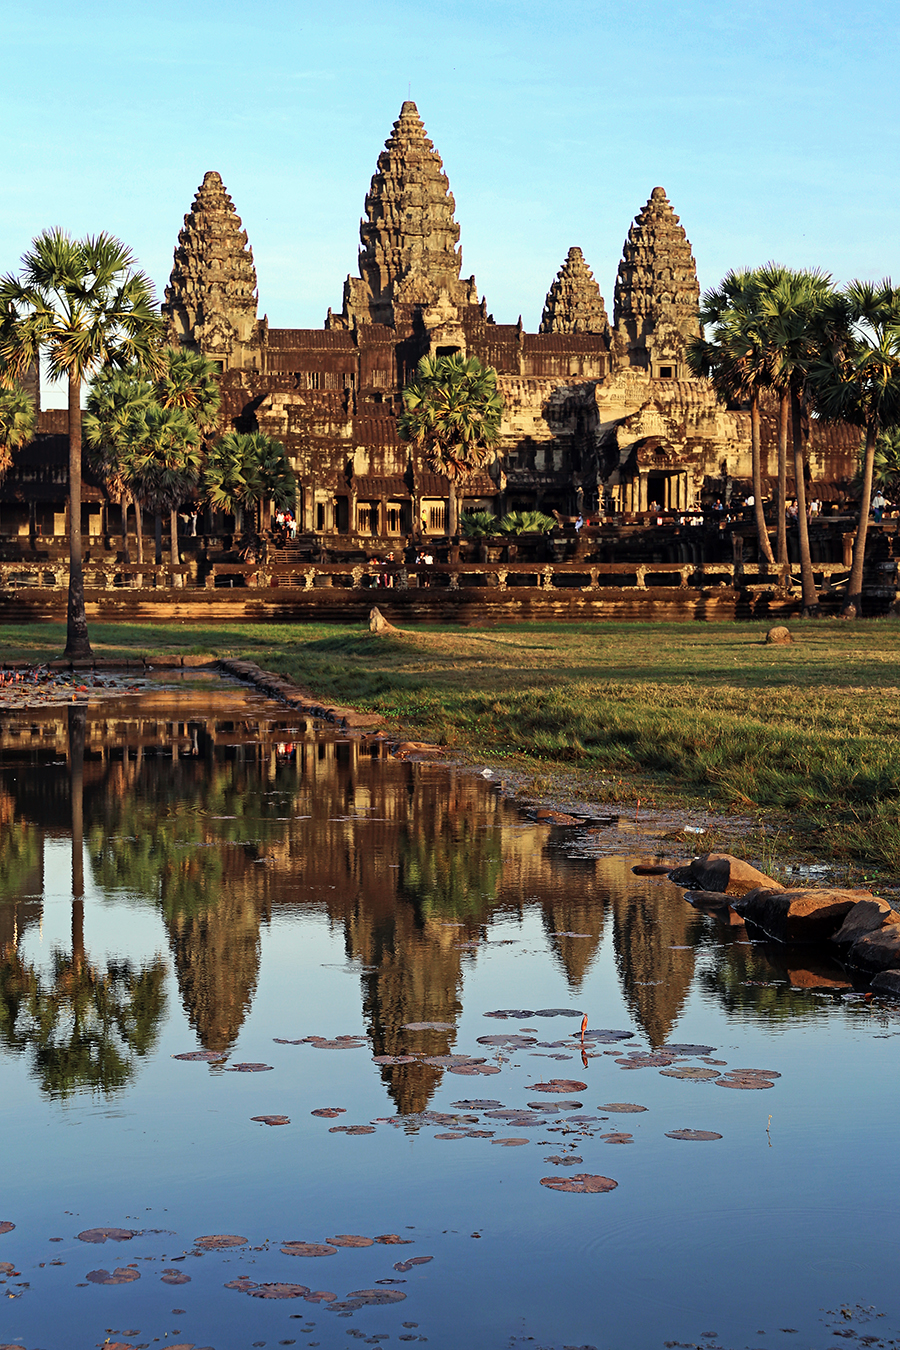 Siem Reap, Cambodia: Why sunset is better than sunrise at Angkor Wat